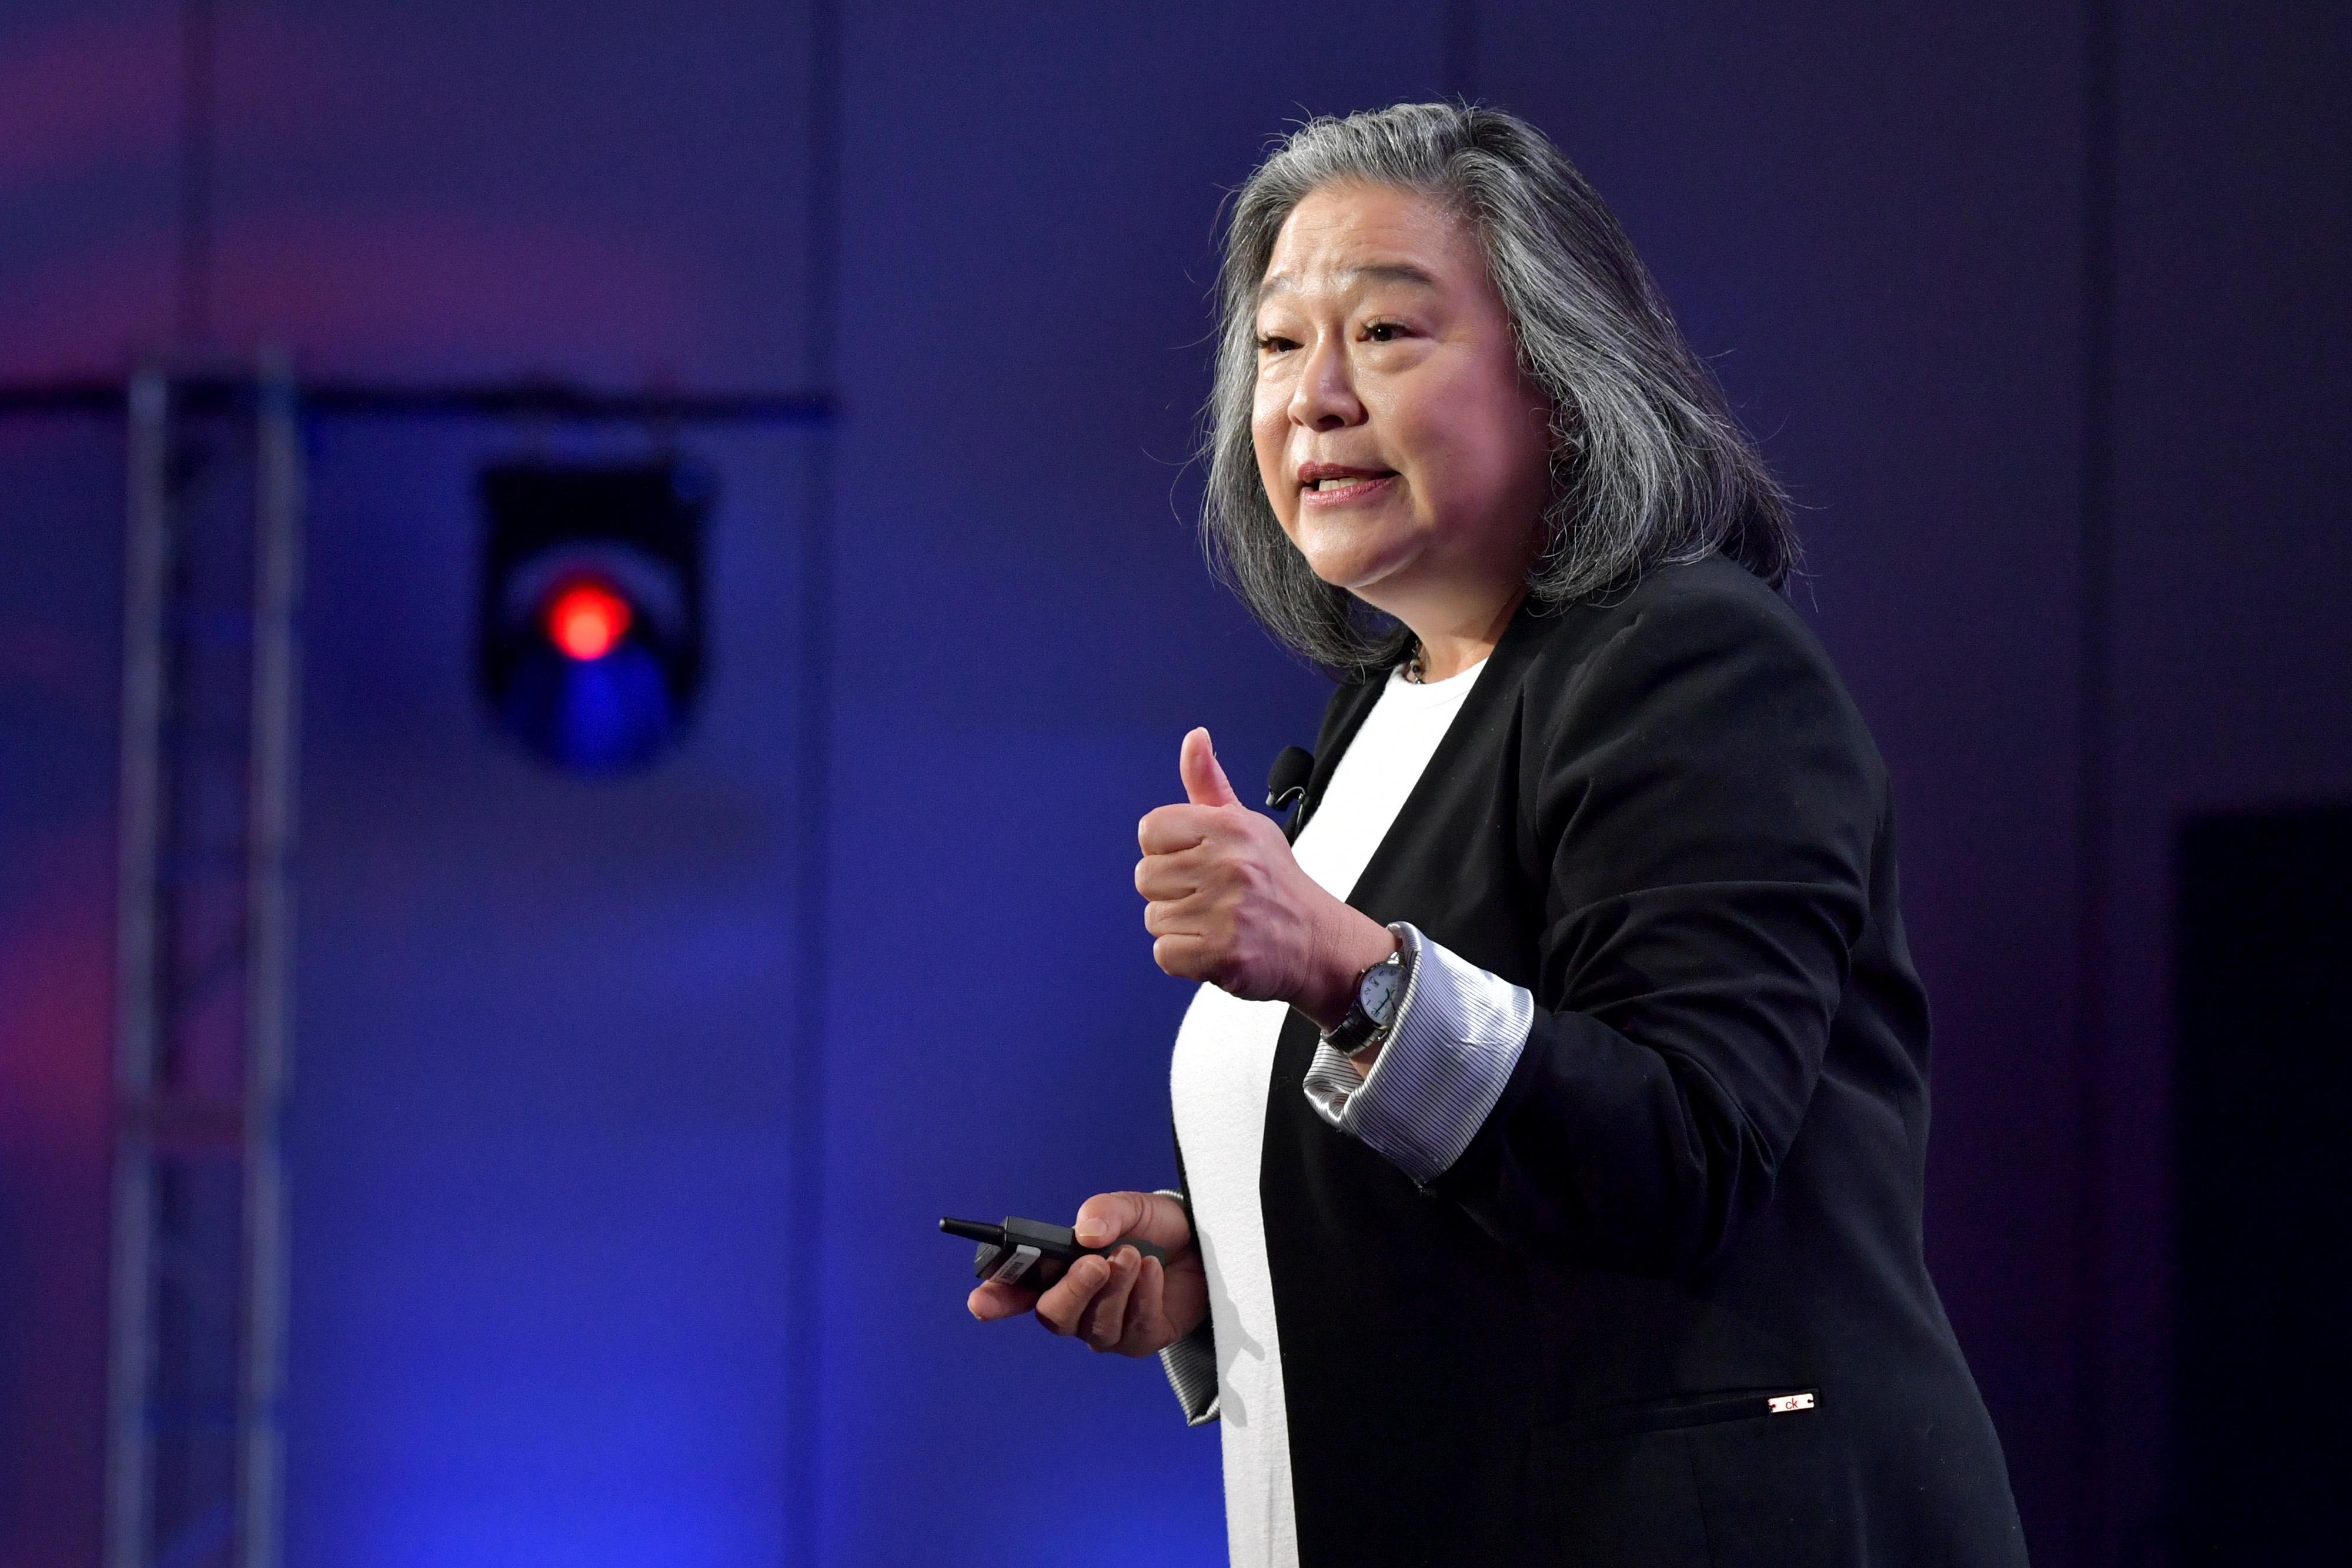 Tina Tchen, President & CEO of TIME'S UP, speaks onstage during The 2020 MAKERS Conference on Wednesday, February 12, in Los Angeles, California.